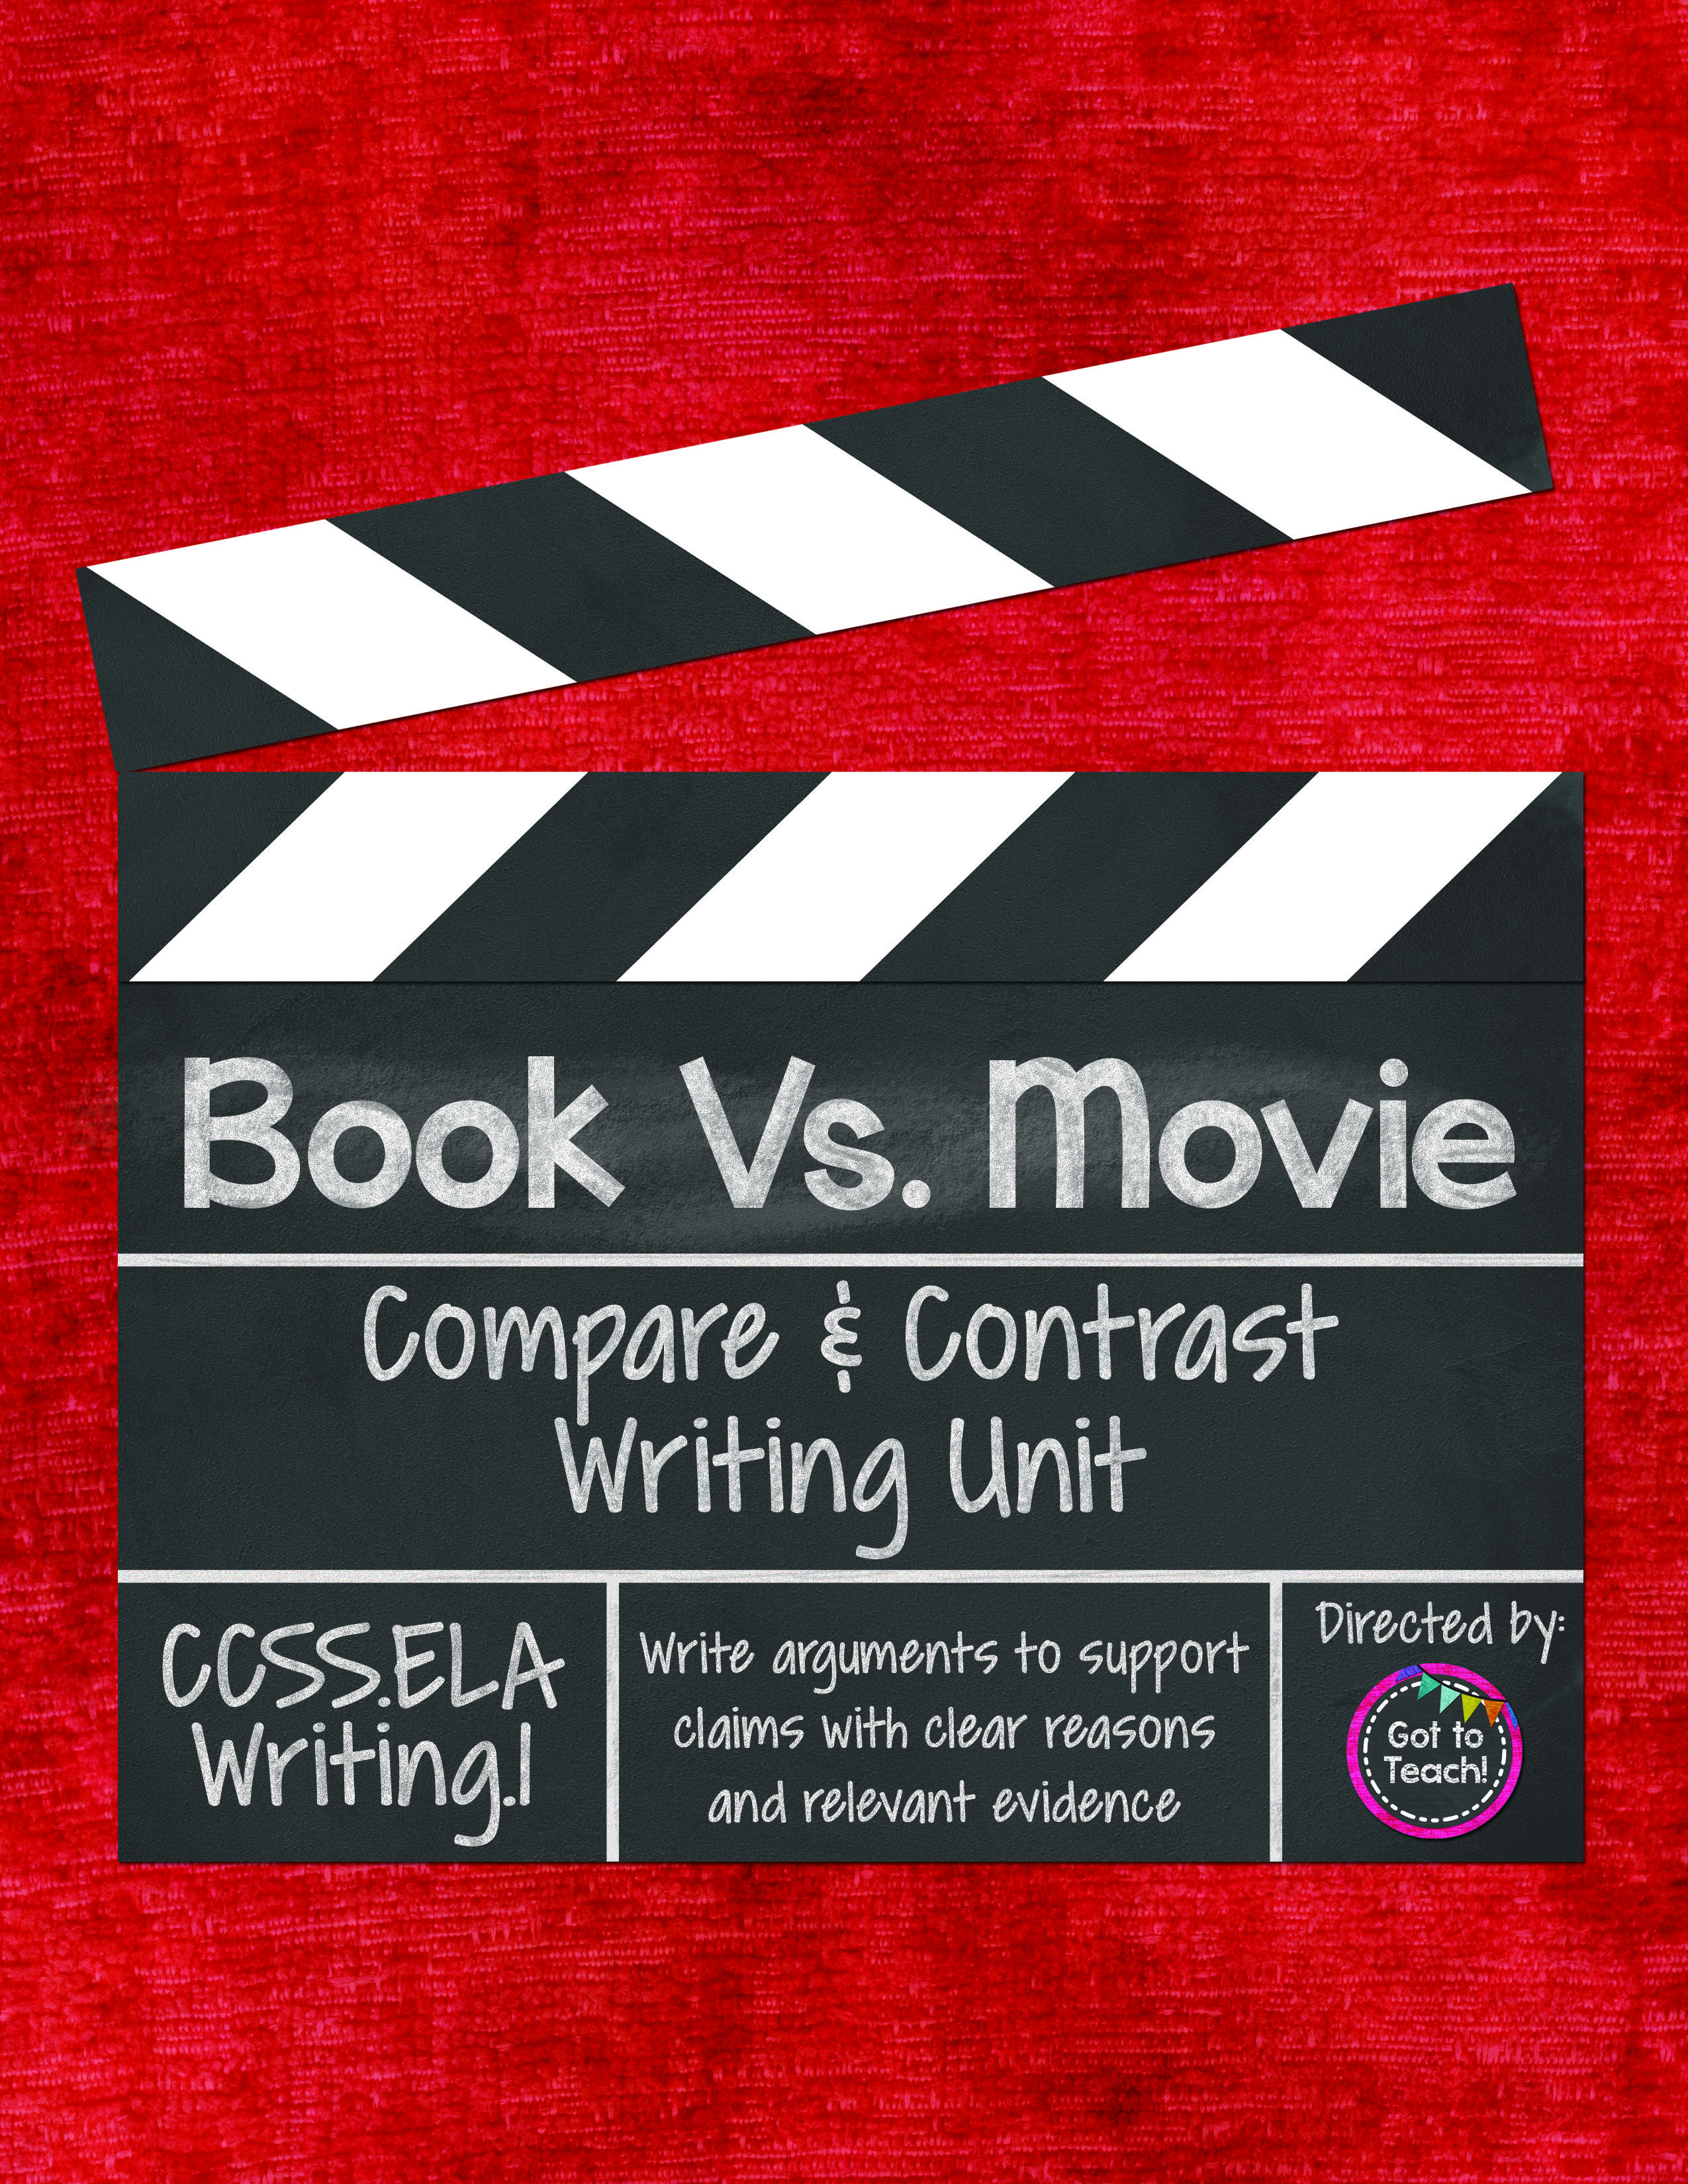 Book Vs Movie Writing A Compare And Contrast Opinion Essay